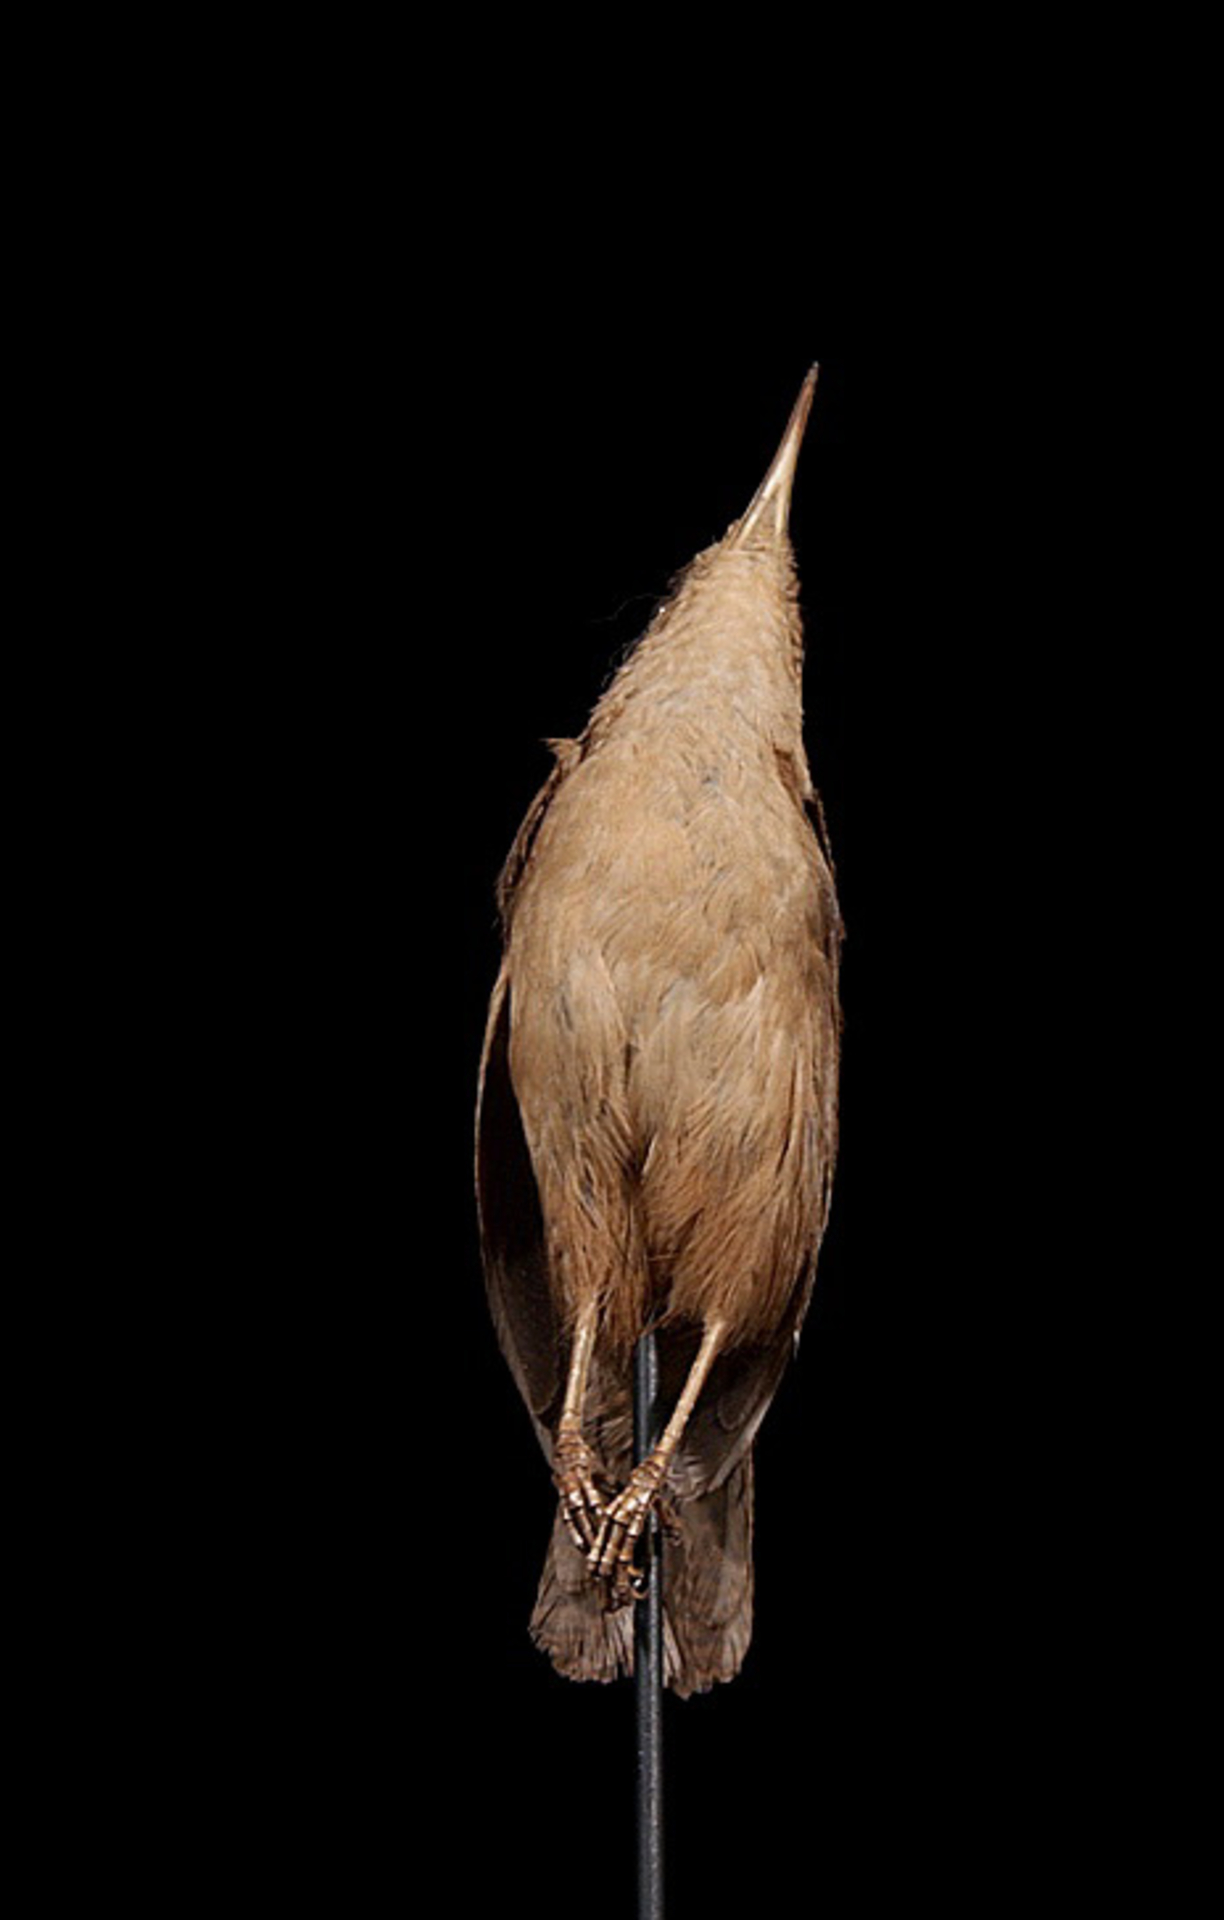 RMNH.AVES.110001 | Troglodytes aedon martinicensis Sclater, 1866